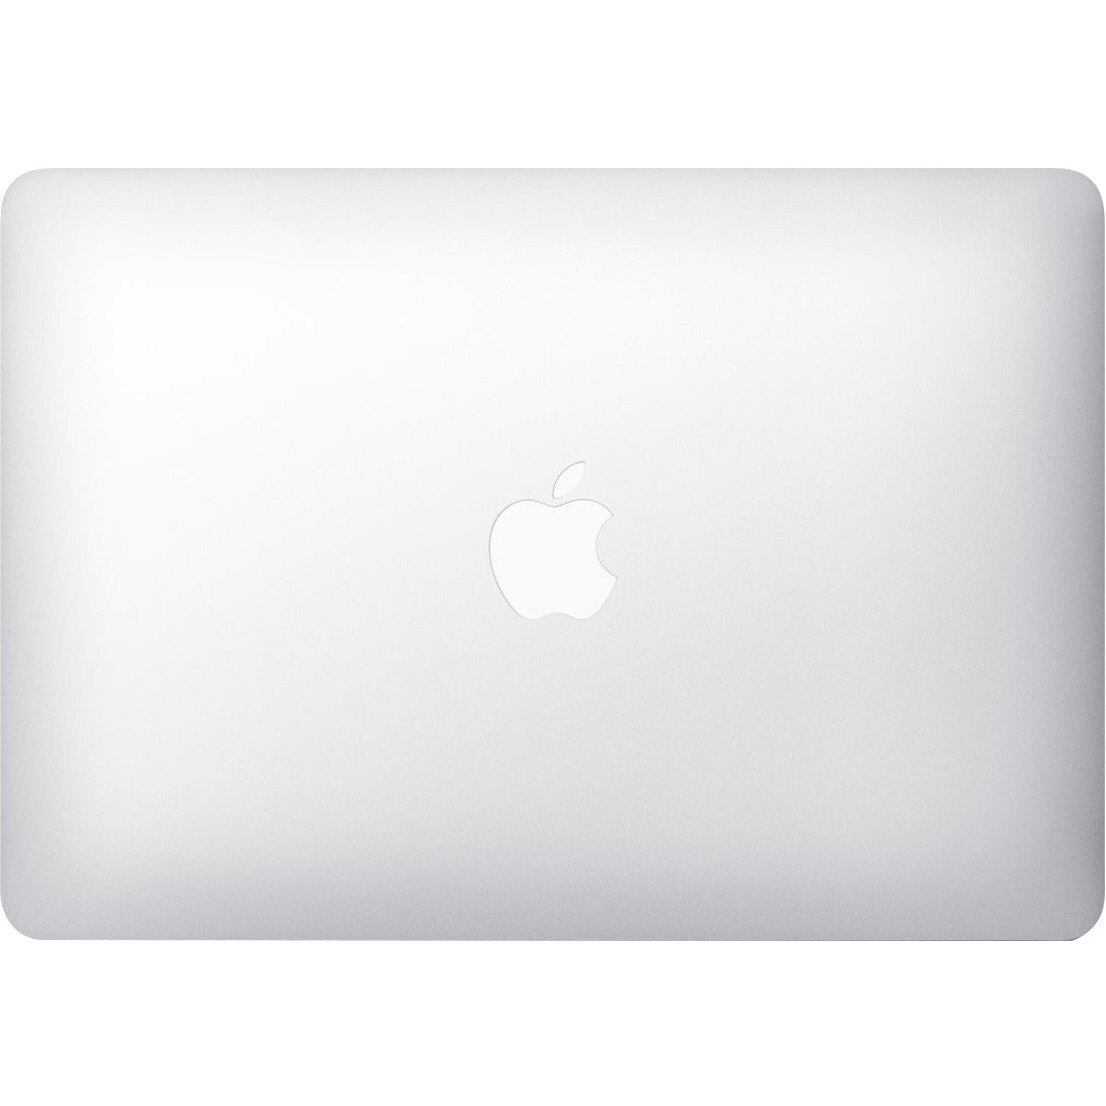 "Apple 13.3"" MacBook Air 128GB SSD #MQD32LL/A (Newest Version 2017 Model) Frosted Clear Deflector Case Starter Bundle 5"